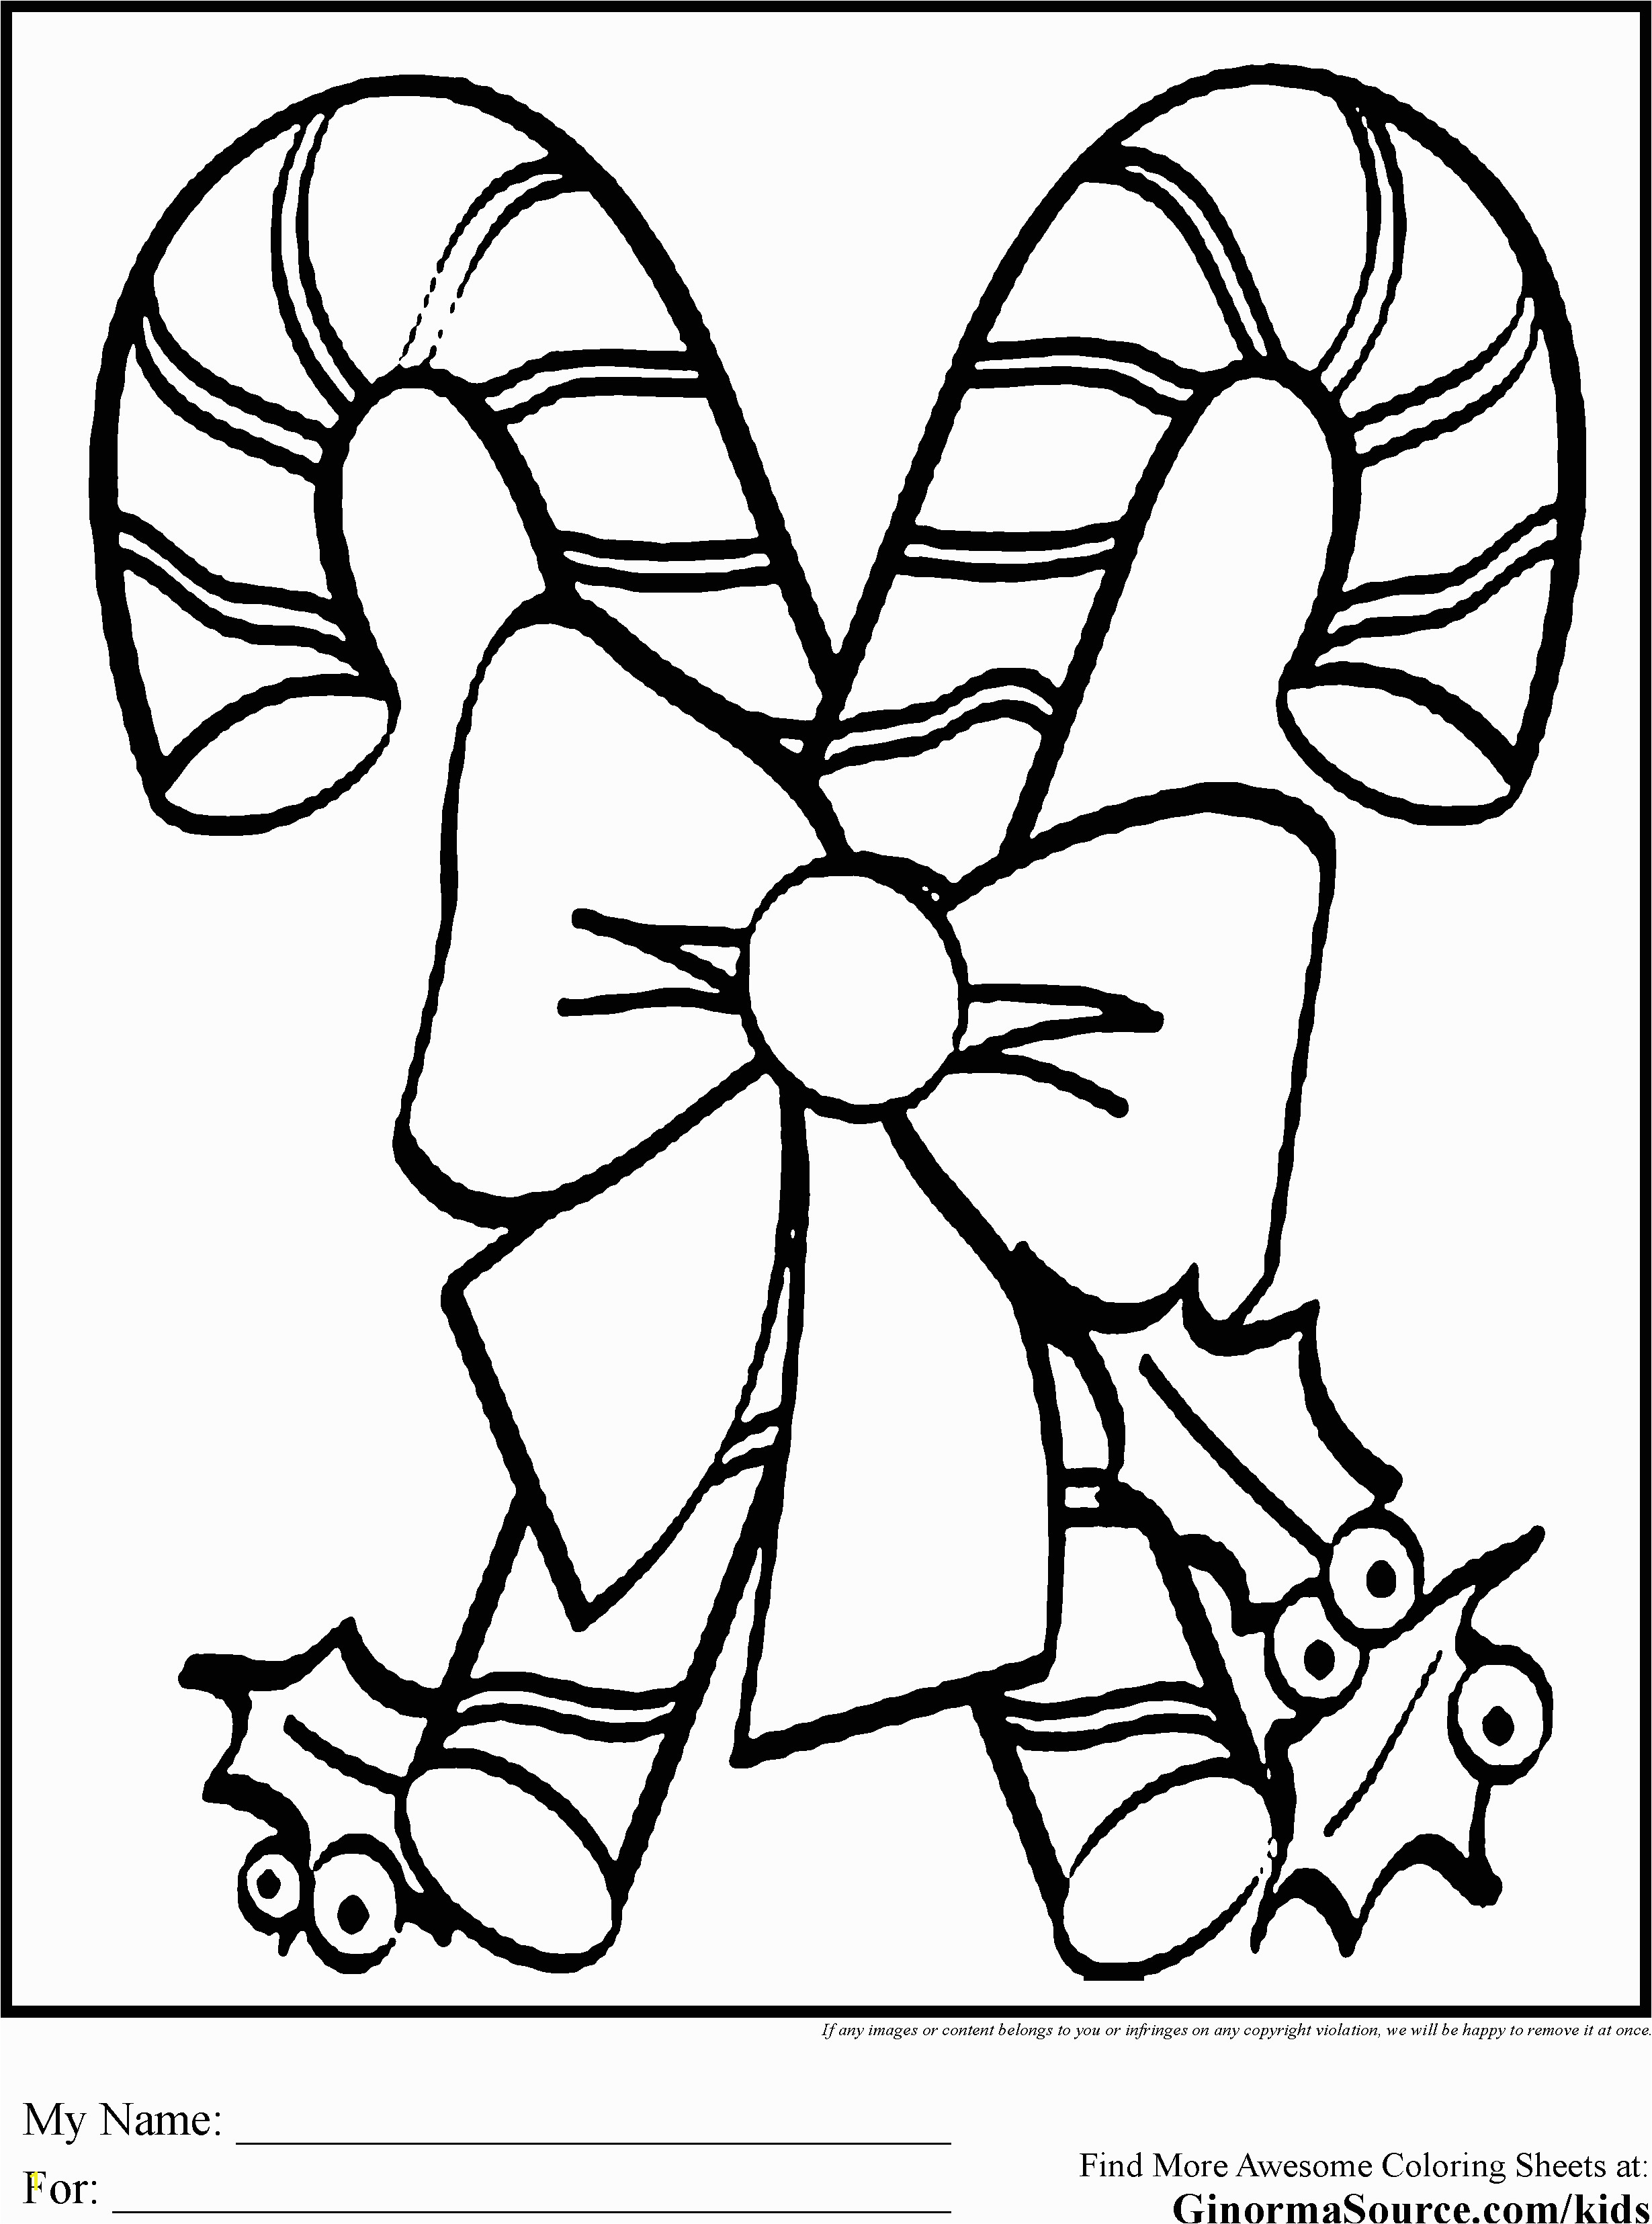 Candy Cane Coloring Pages to Print Christmas Coloring Pages for Kids Candy Canes